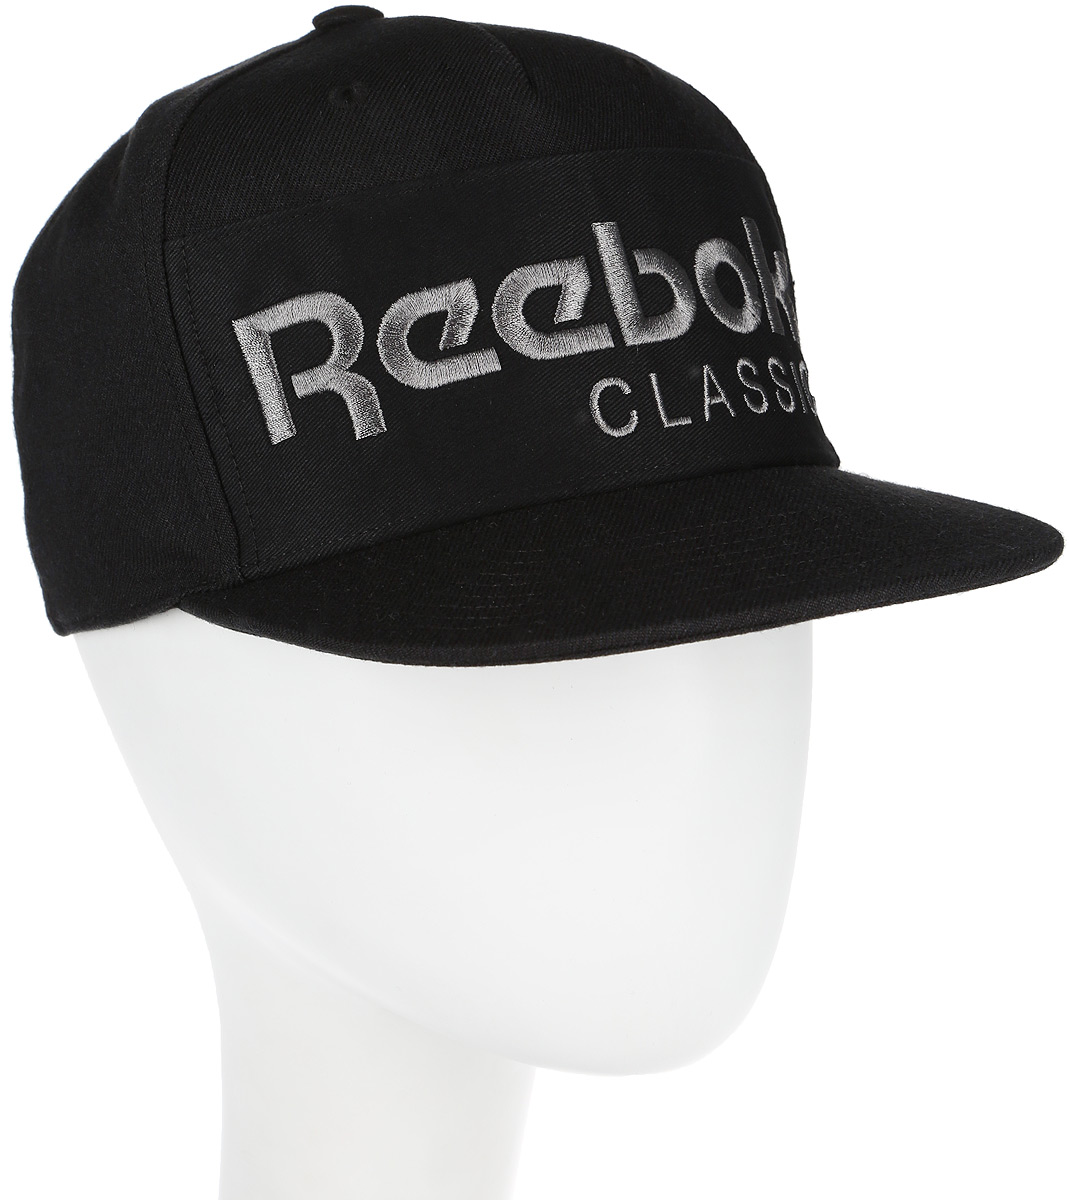 Бейсболка Reebok Cl Foundation Cap, цвет: черный. AX9965. Размер M (58) multi language ds 2cd2135f is 3mp dome ip camera h 265 ir 30m support onvif poe replace ds 2cd2132f is security camera